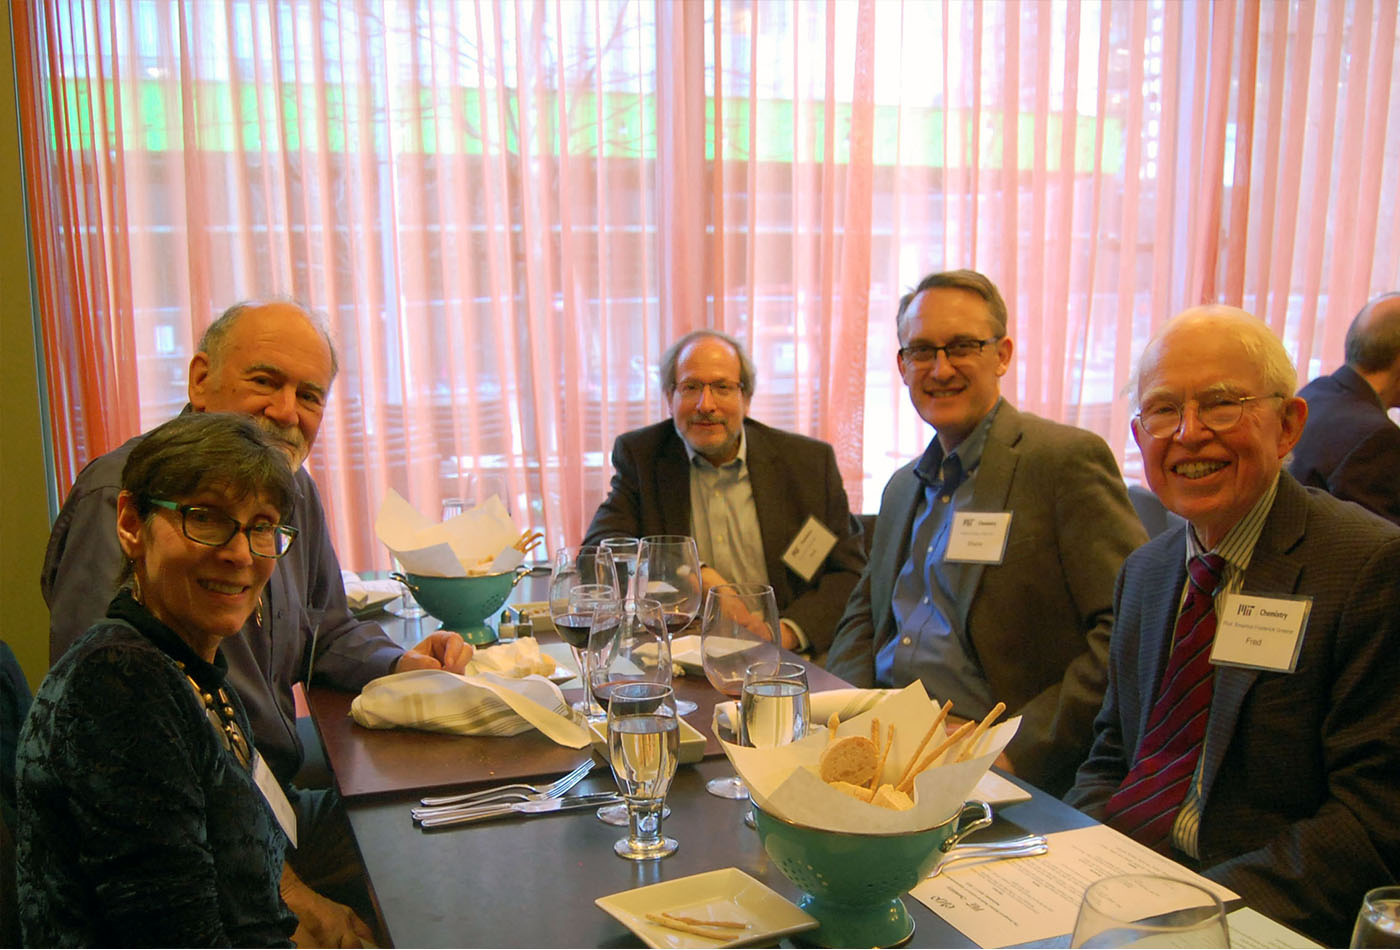 L-R (clockwise) seated at dinner: Janice Marmor, Robert Marmor, PhD'70, Prof. Rick Danheiser, Shane Krska, PhD'97, Prof. Emeritus Frederick Greene.